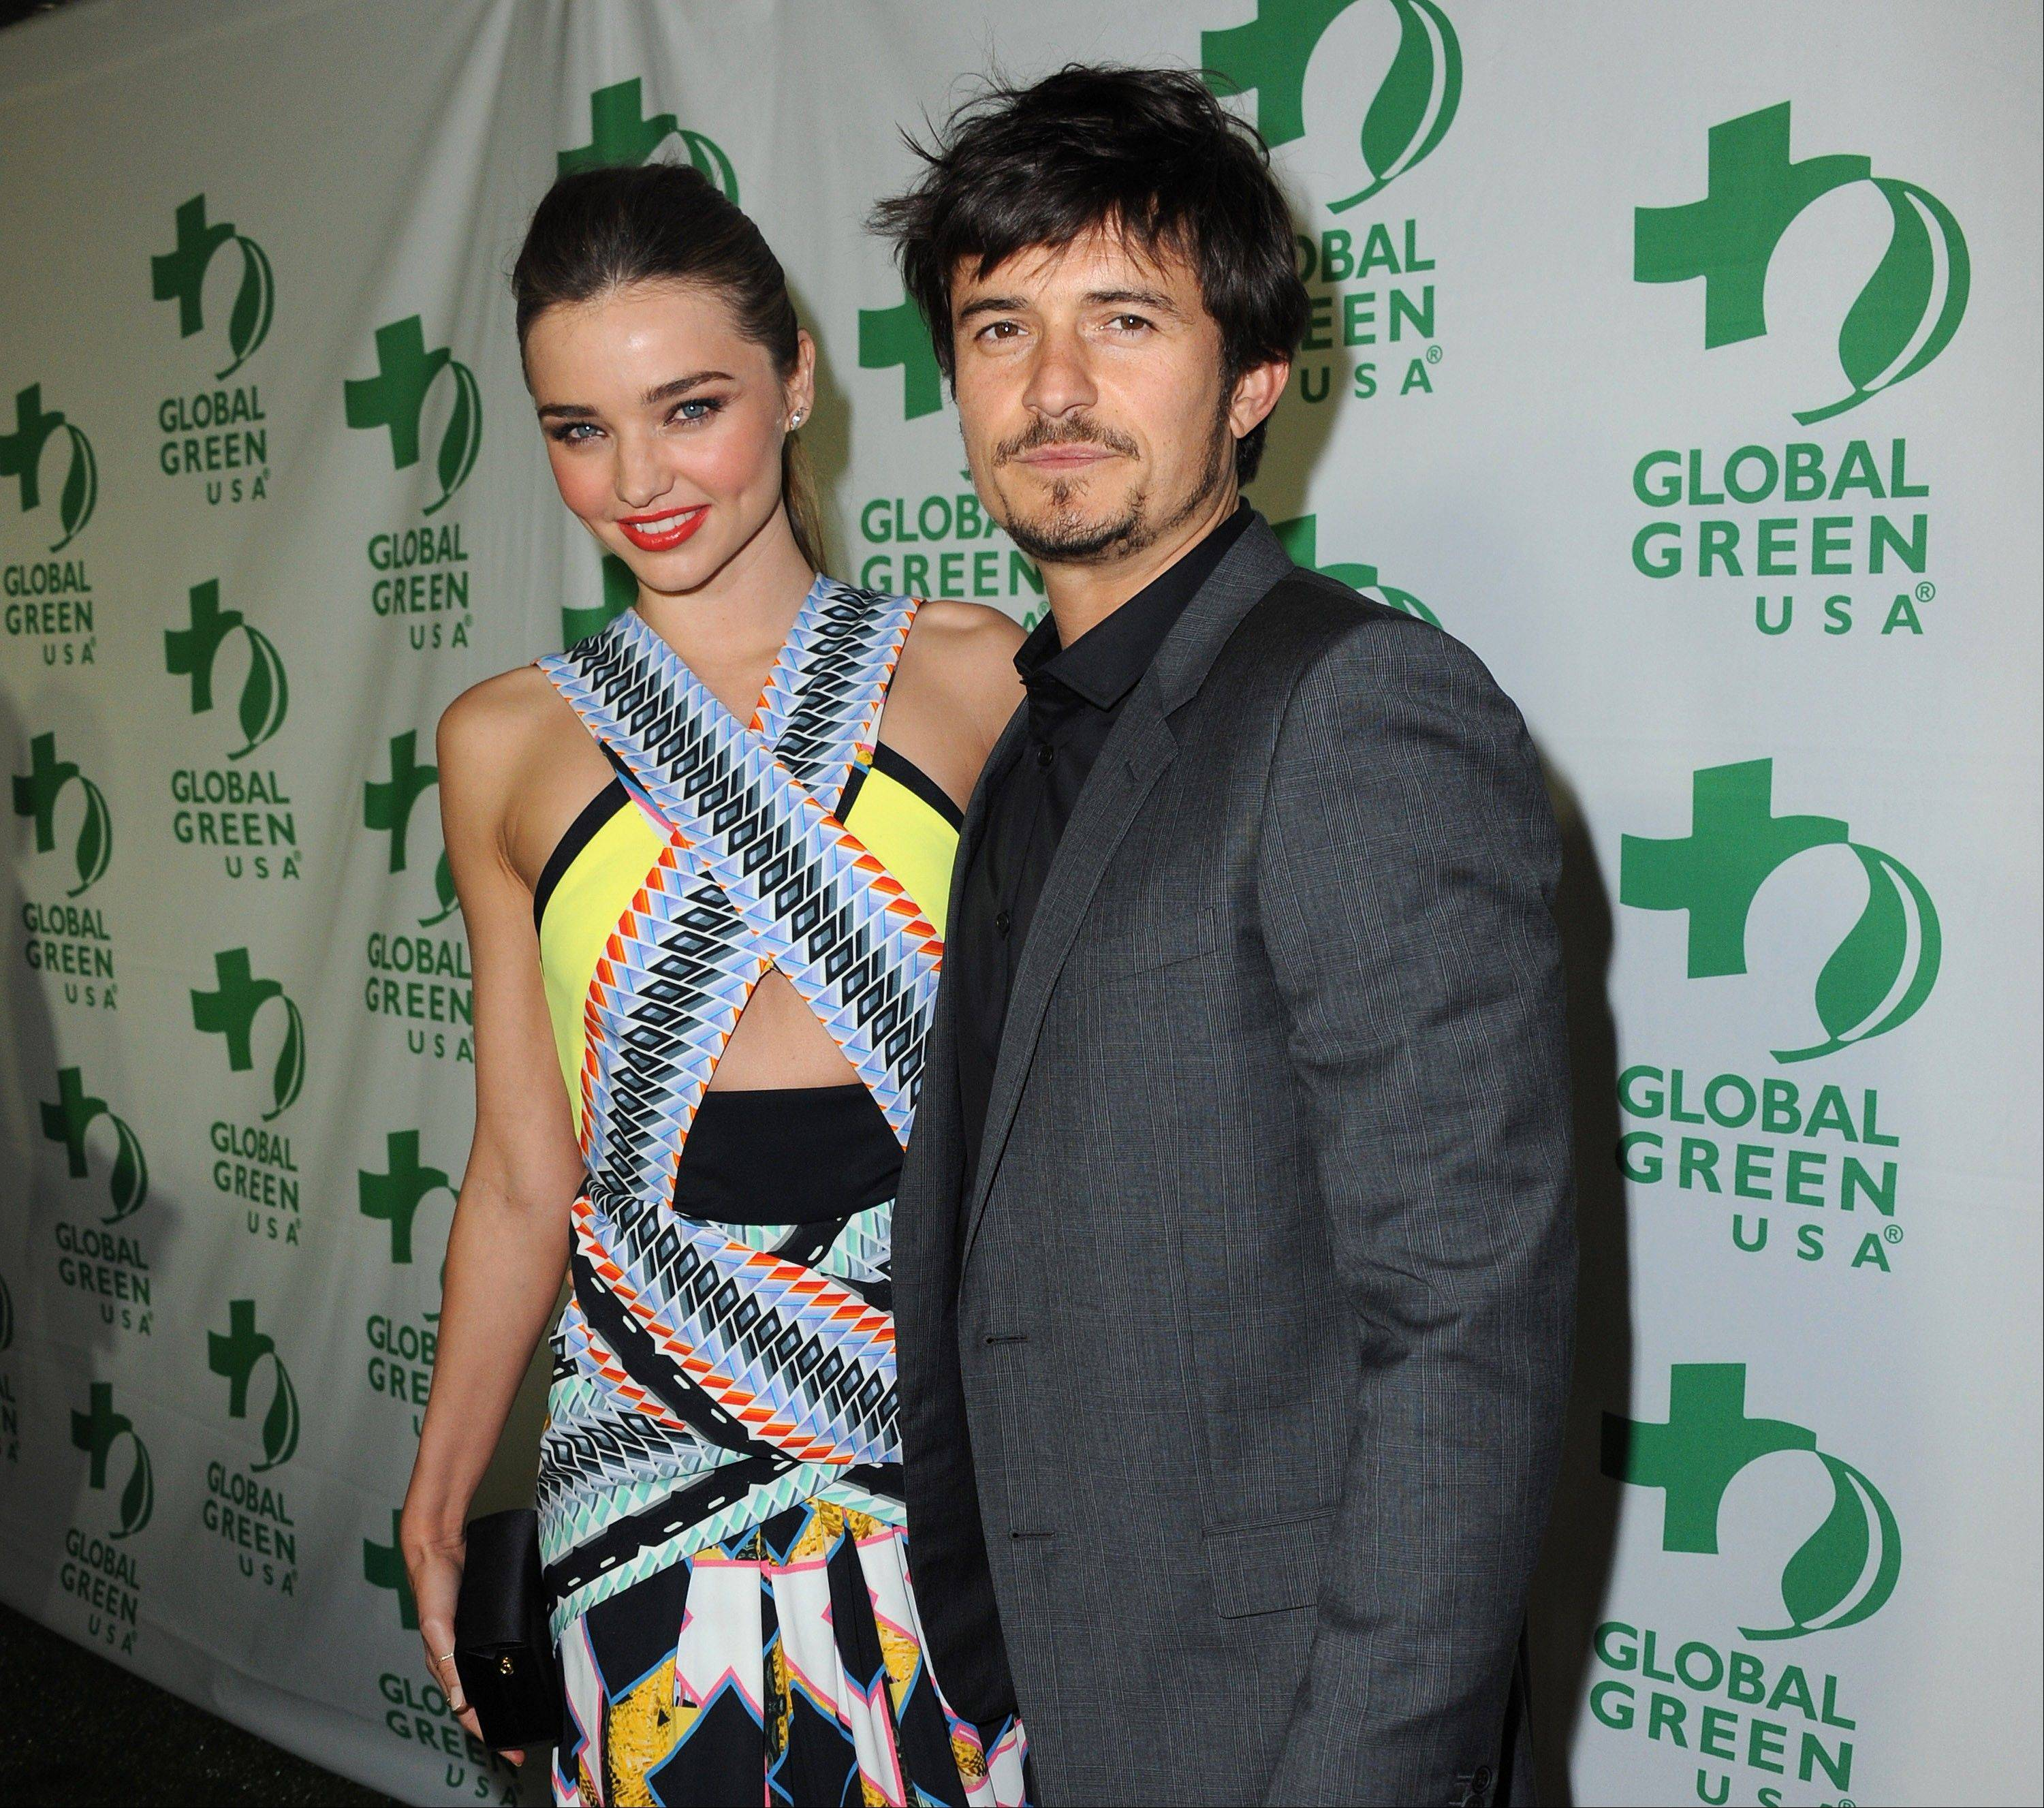 Orlando Bloom and Miranda Kerr have confirmed the end of their marriage, saying they have been �amicably separated for the past few months.�